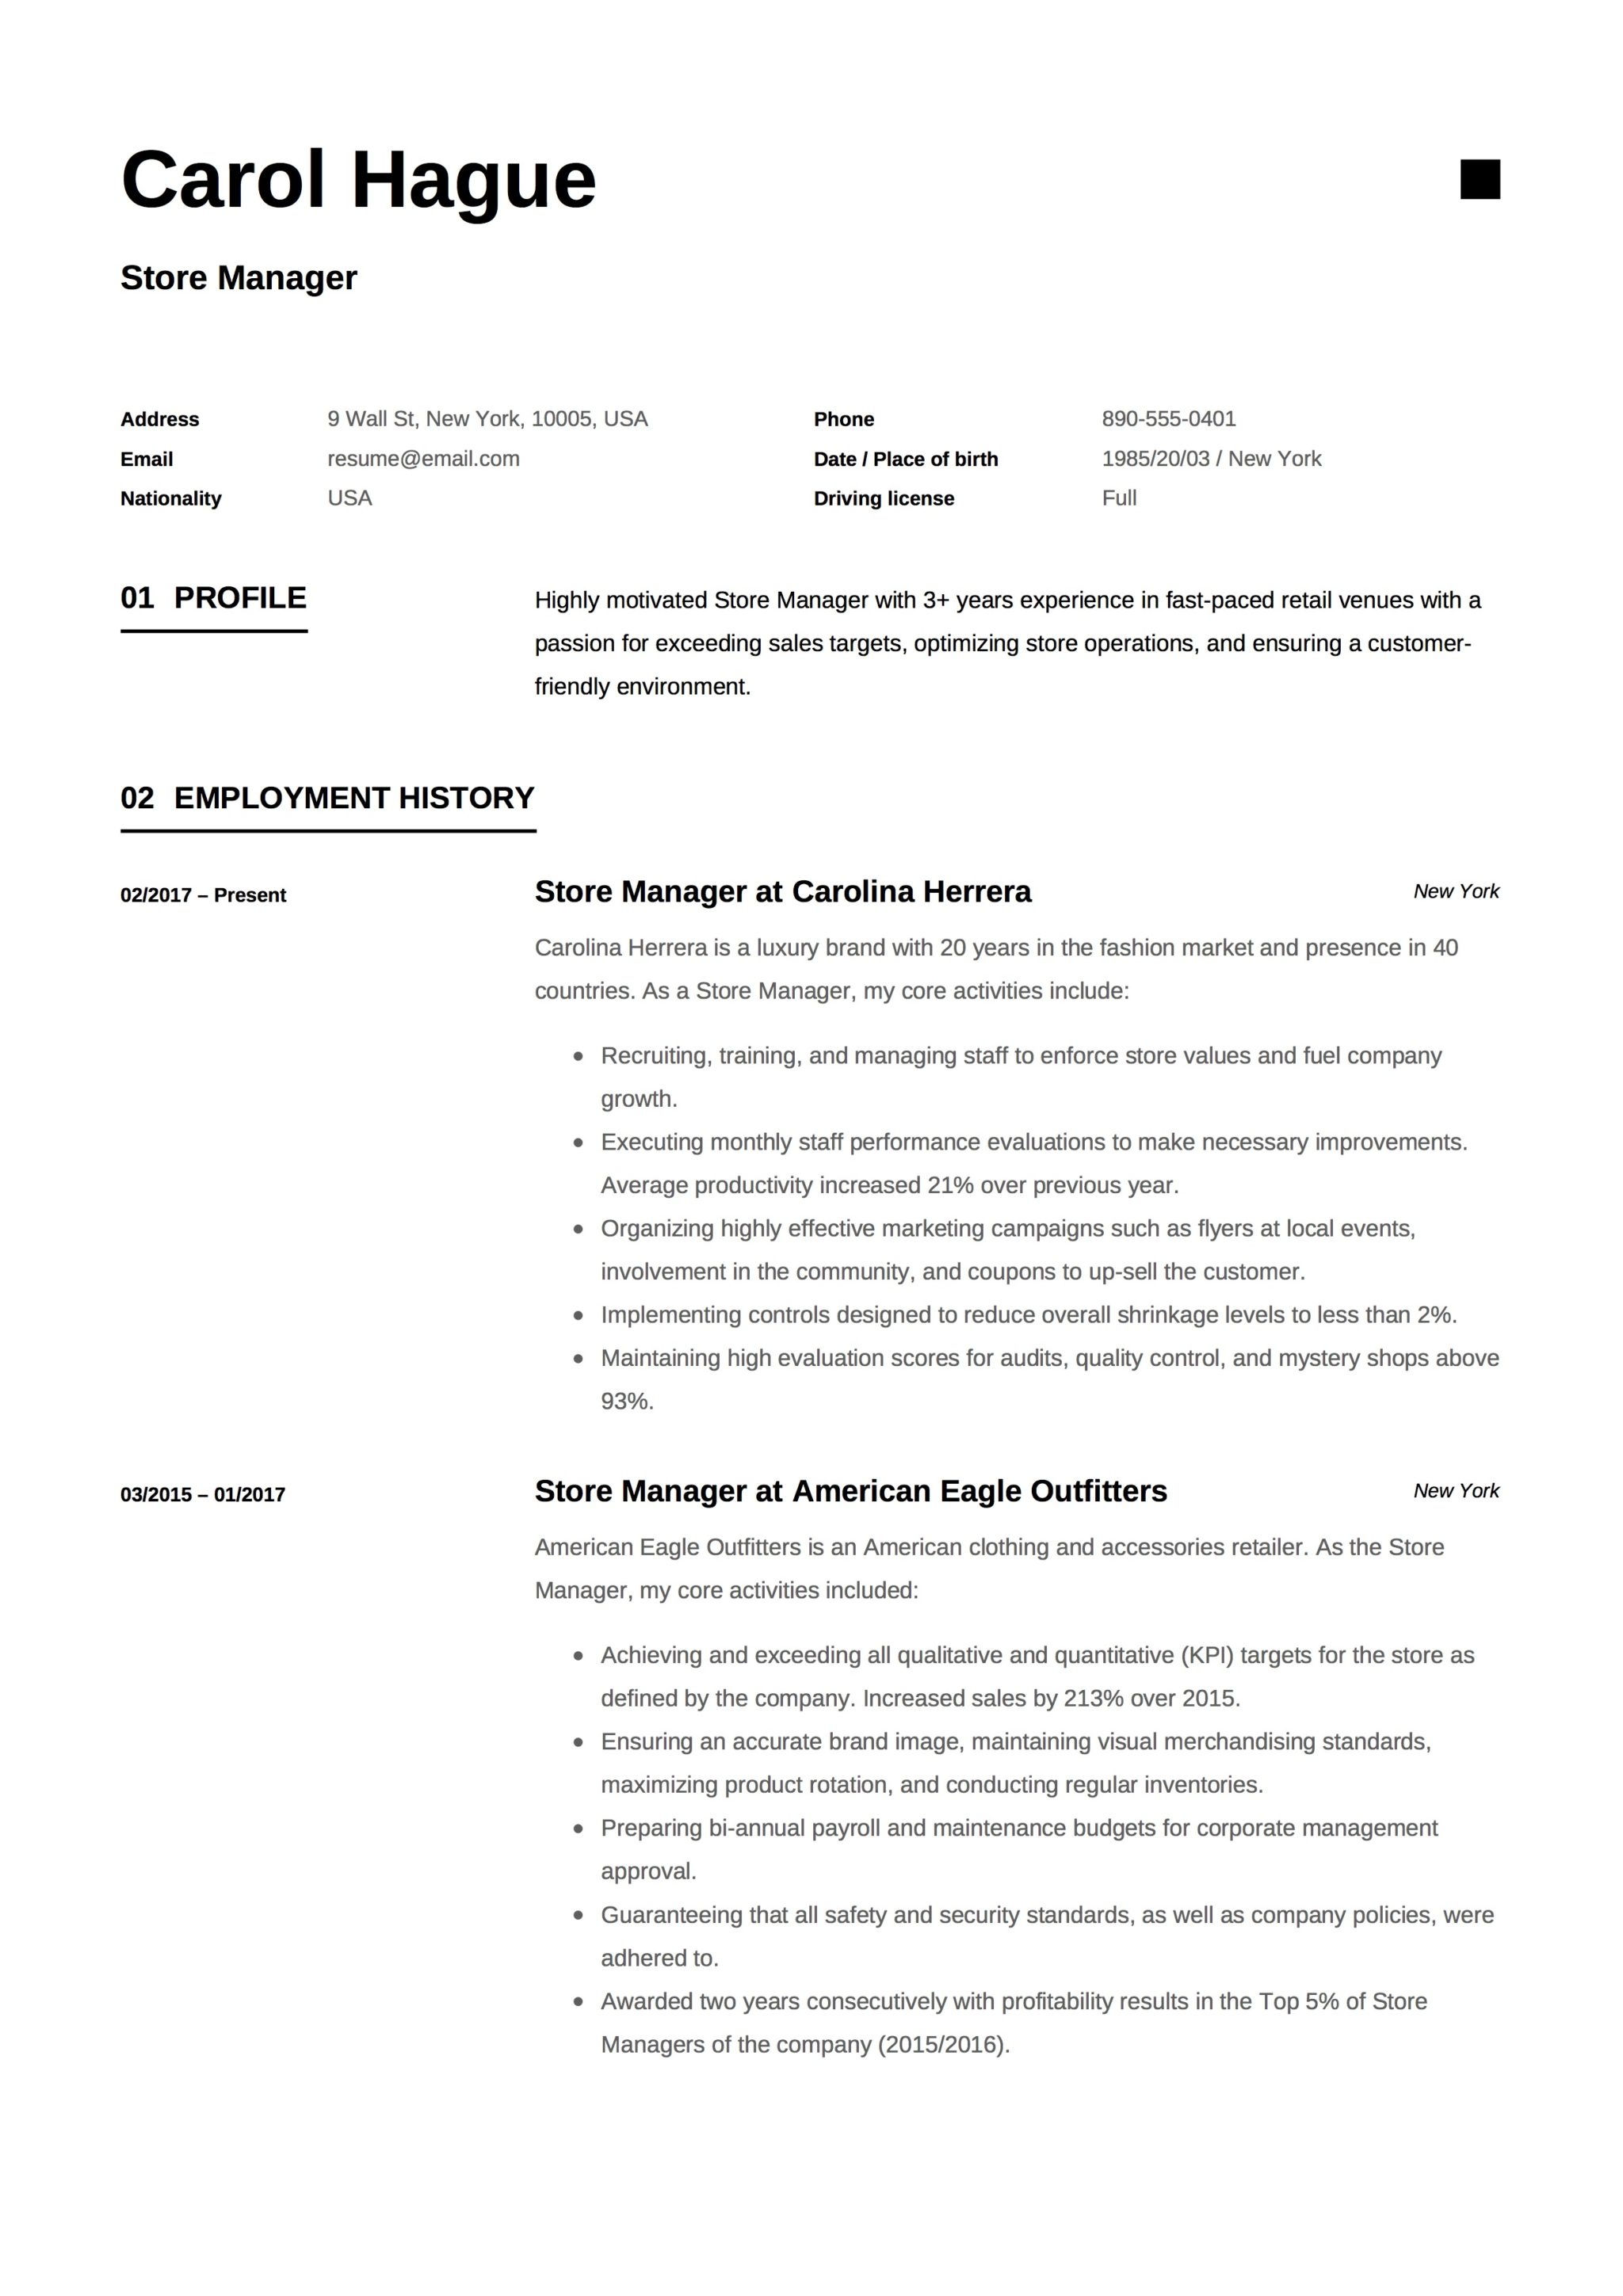 Carol Hague Store Manager Resume Example